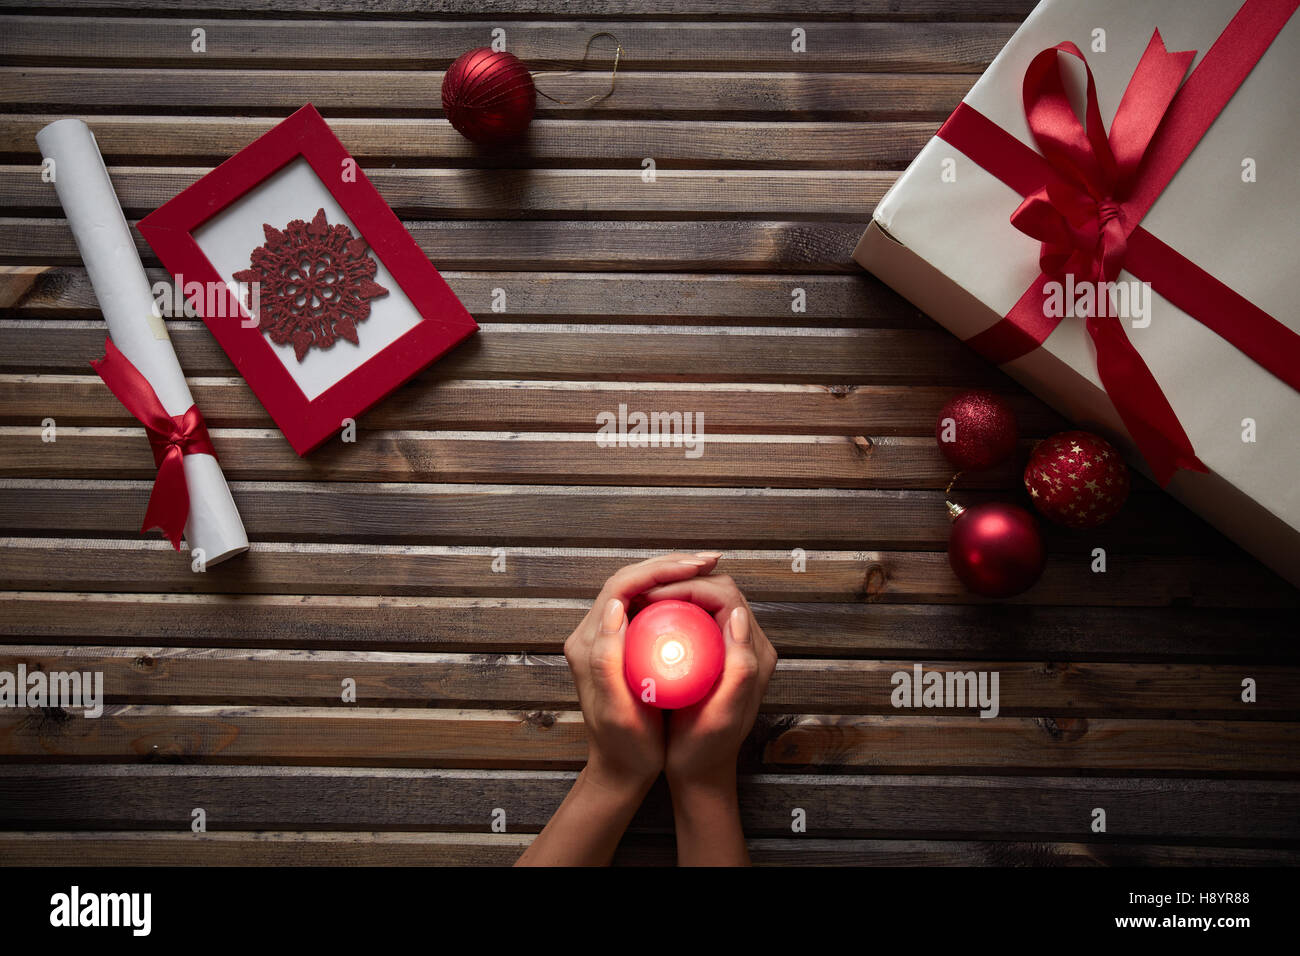 Human Hands Holding Red Burning Candle Being Surrounded By Xmas